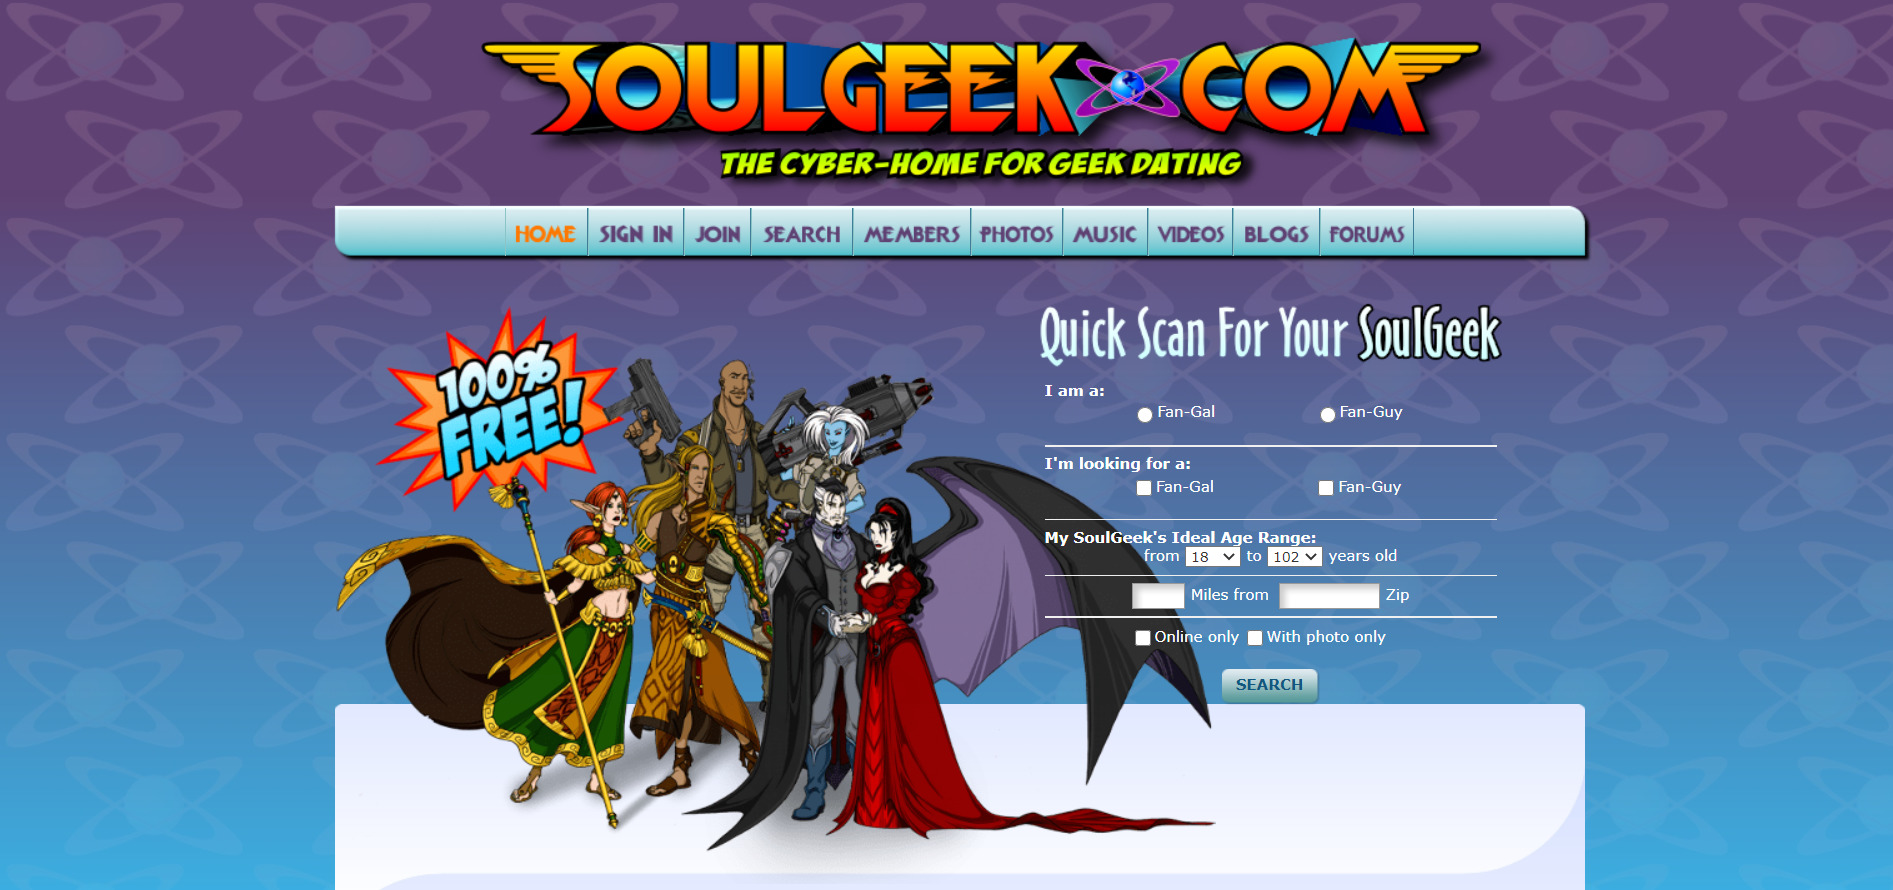 2021 03 07 5 - Top 7 dating apps and websites for geeks and gamers